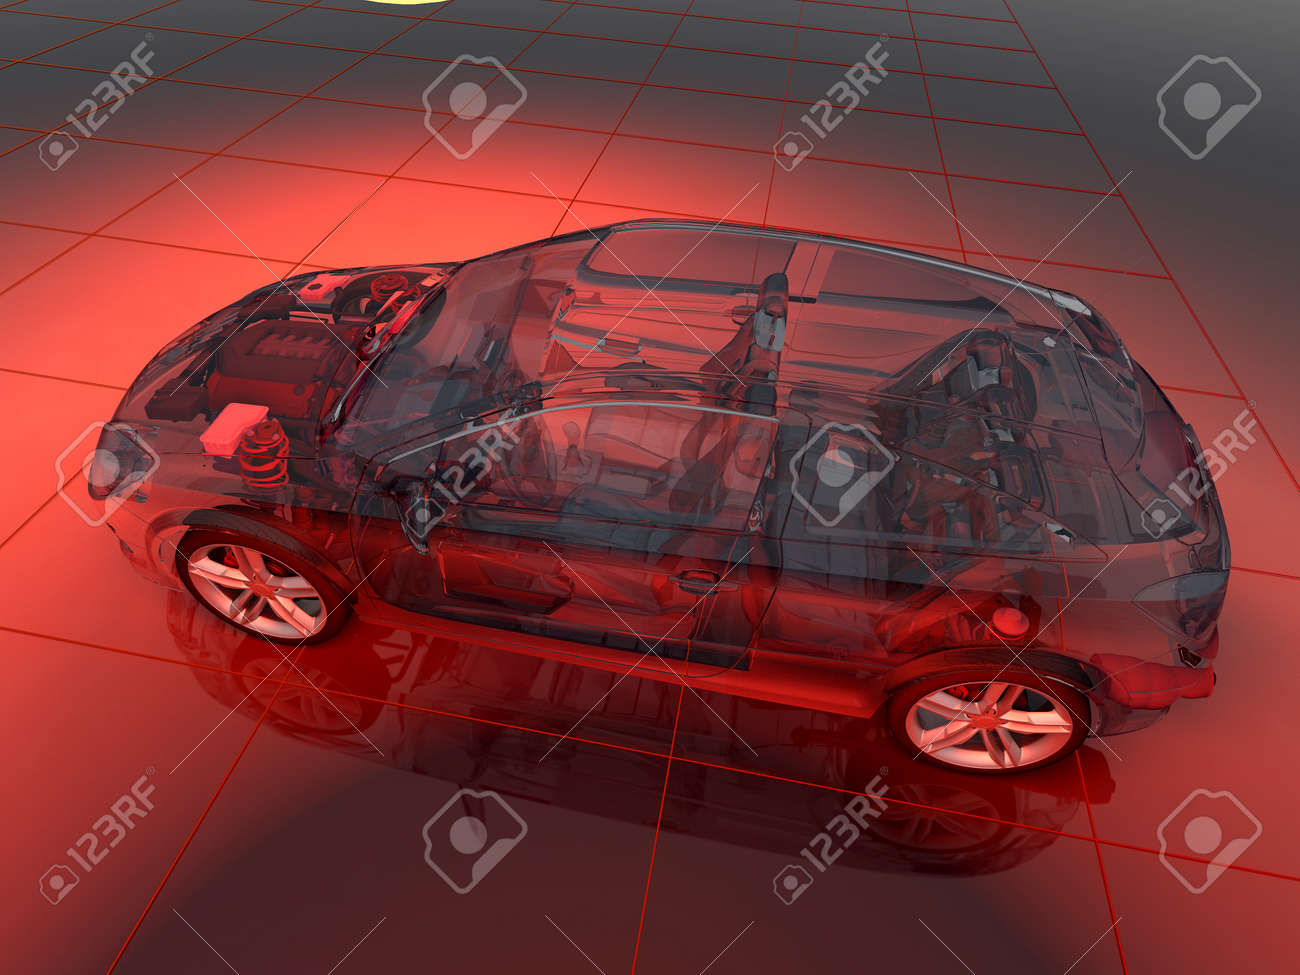 Model cars on the background of the drawing 3d render stock photo 68592583